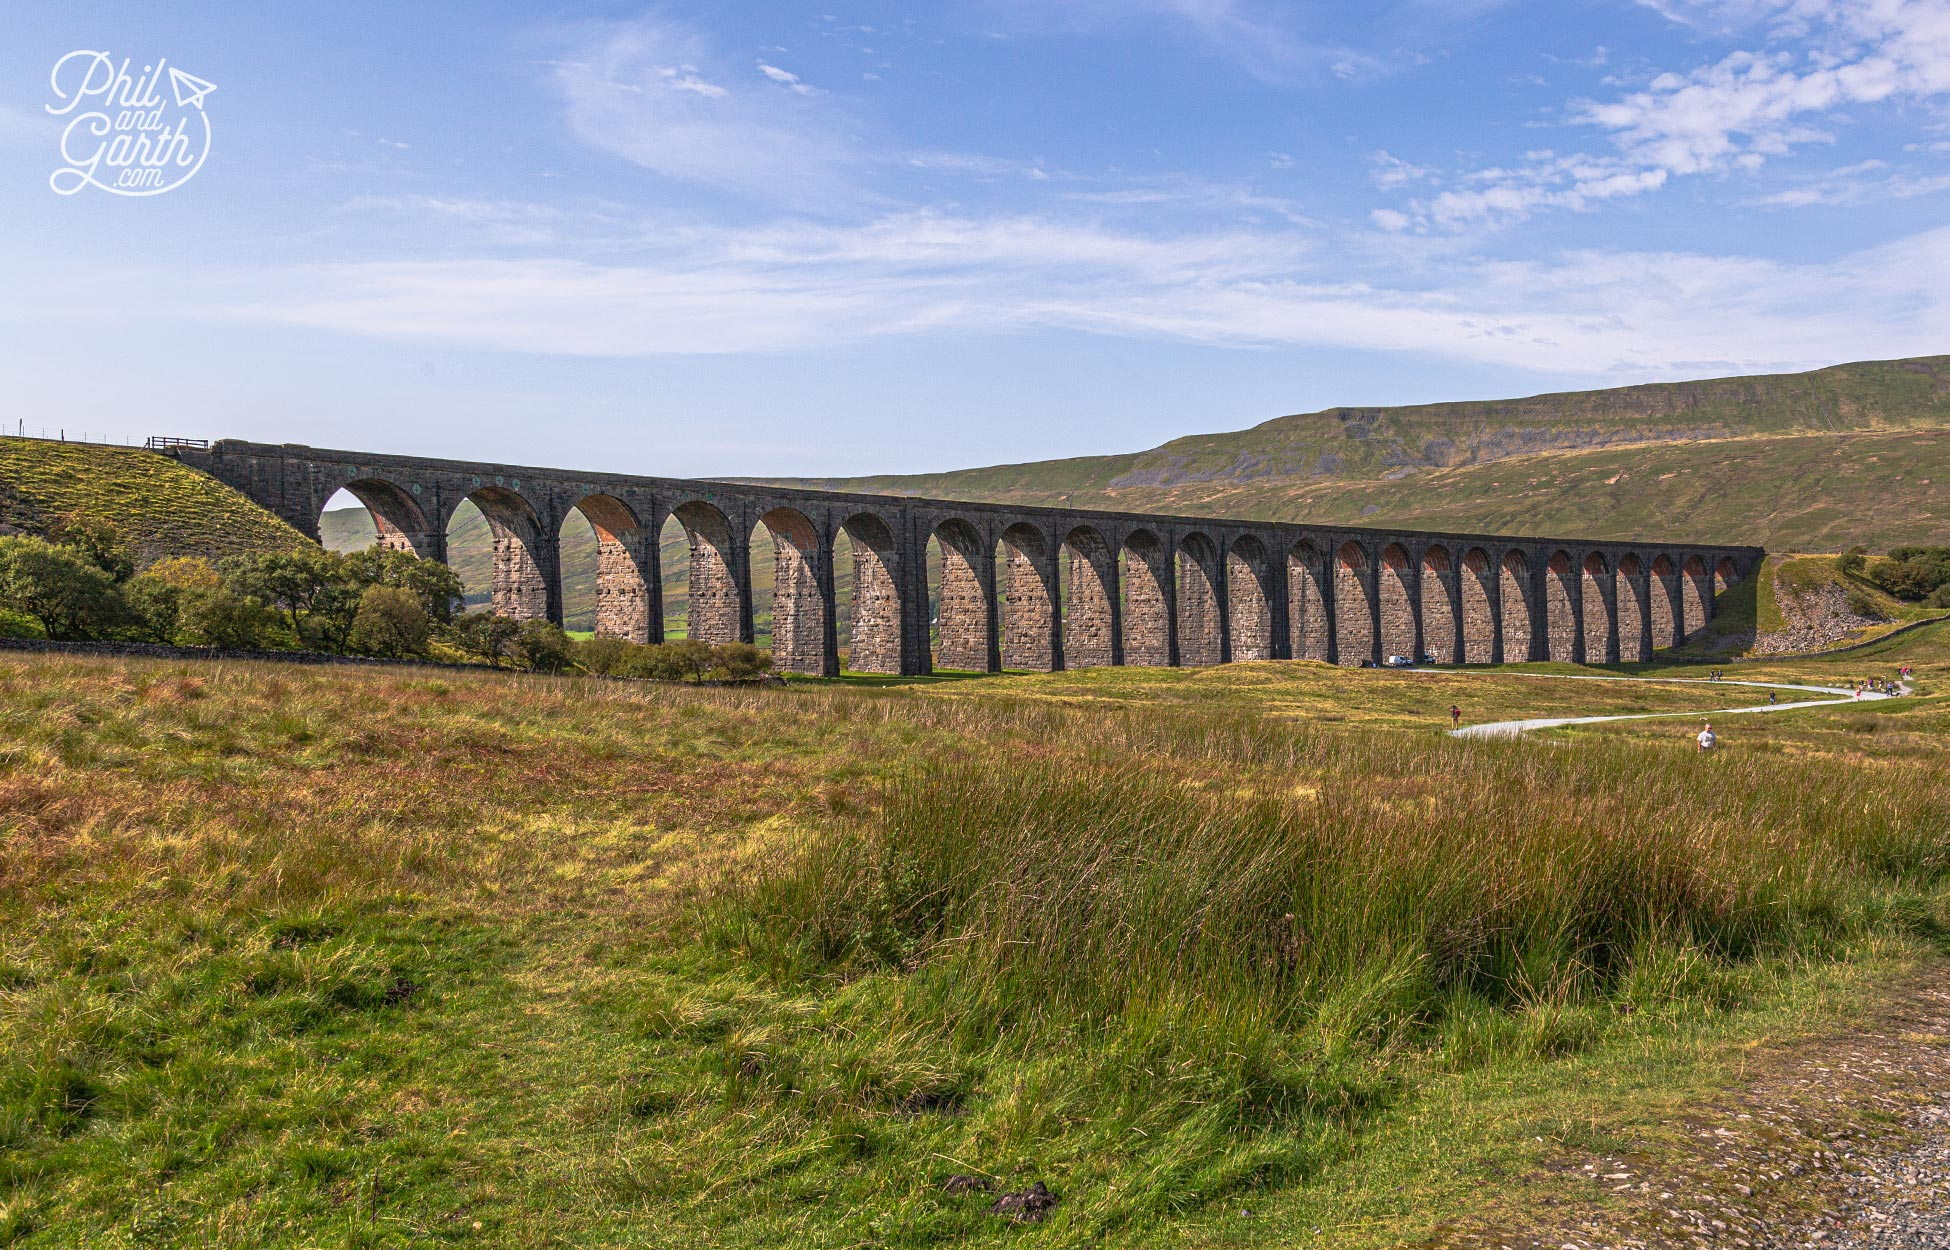 The Ribblehead Viaduct is the longest railway viaduct in the UK